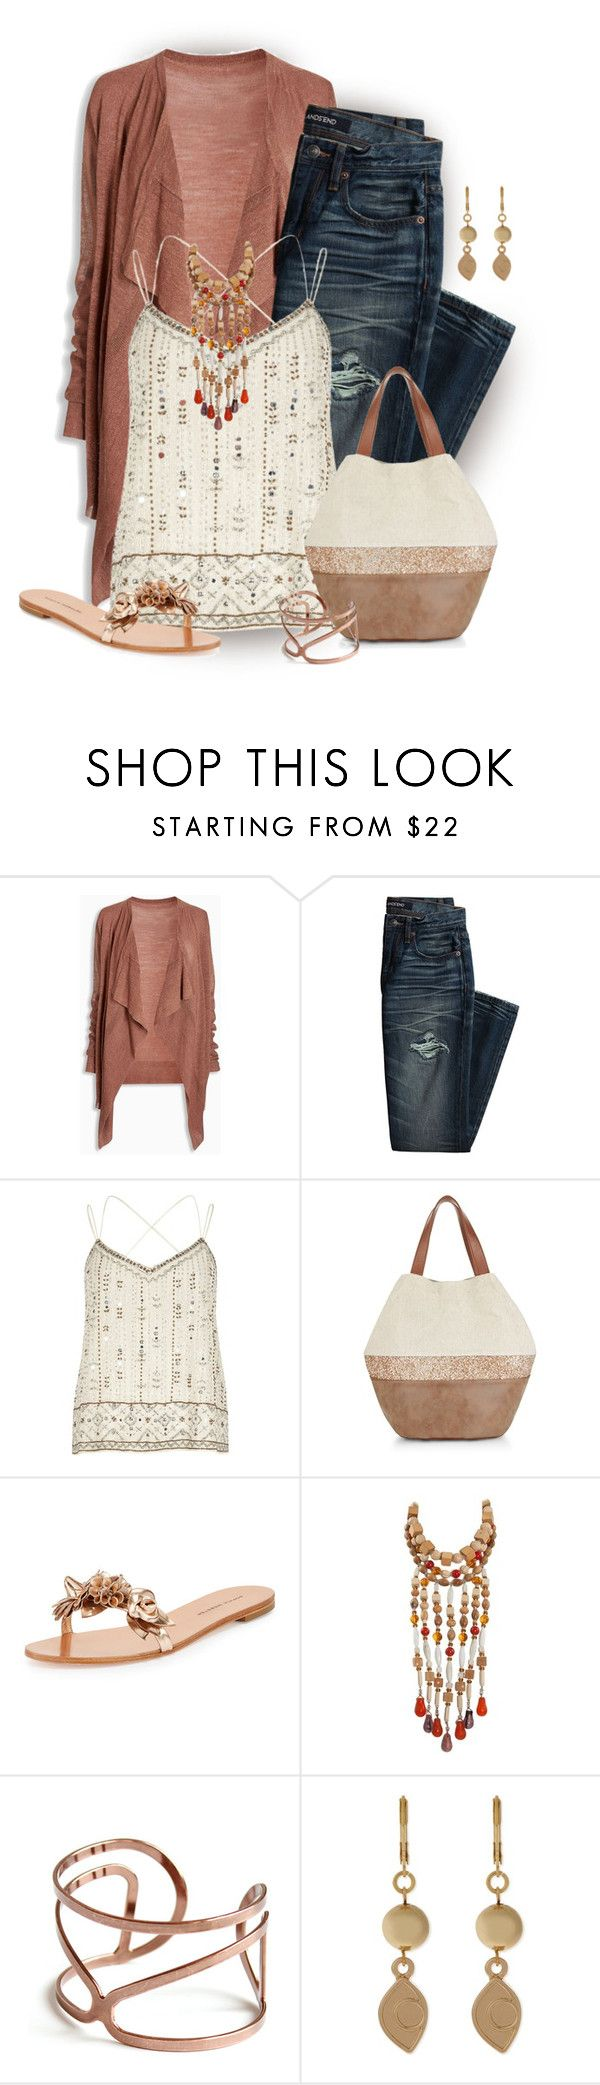 """Boho with Jeans"" by stileclassico ❤ liked on Polyvore featuring Canvas by Lands' End, River Island, New Look, Sophia Webster, Yves Saint Laurent, Sandro, boho and jeans"